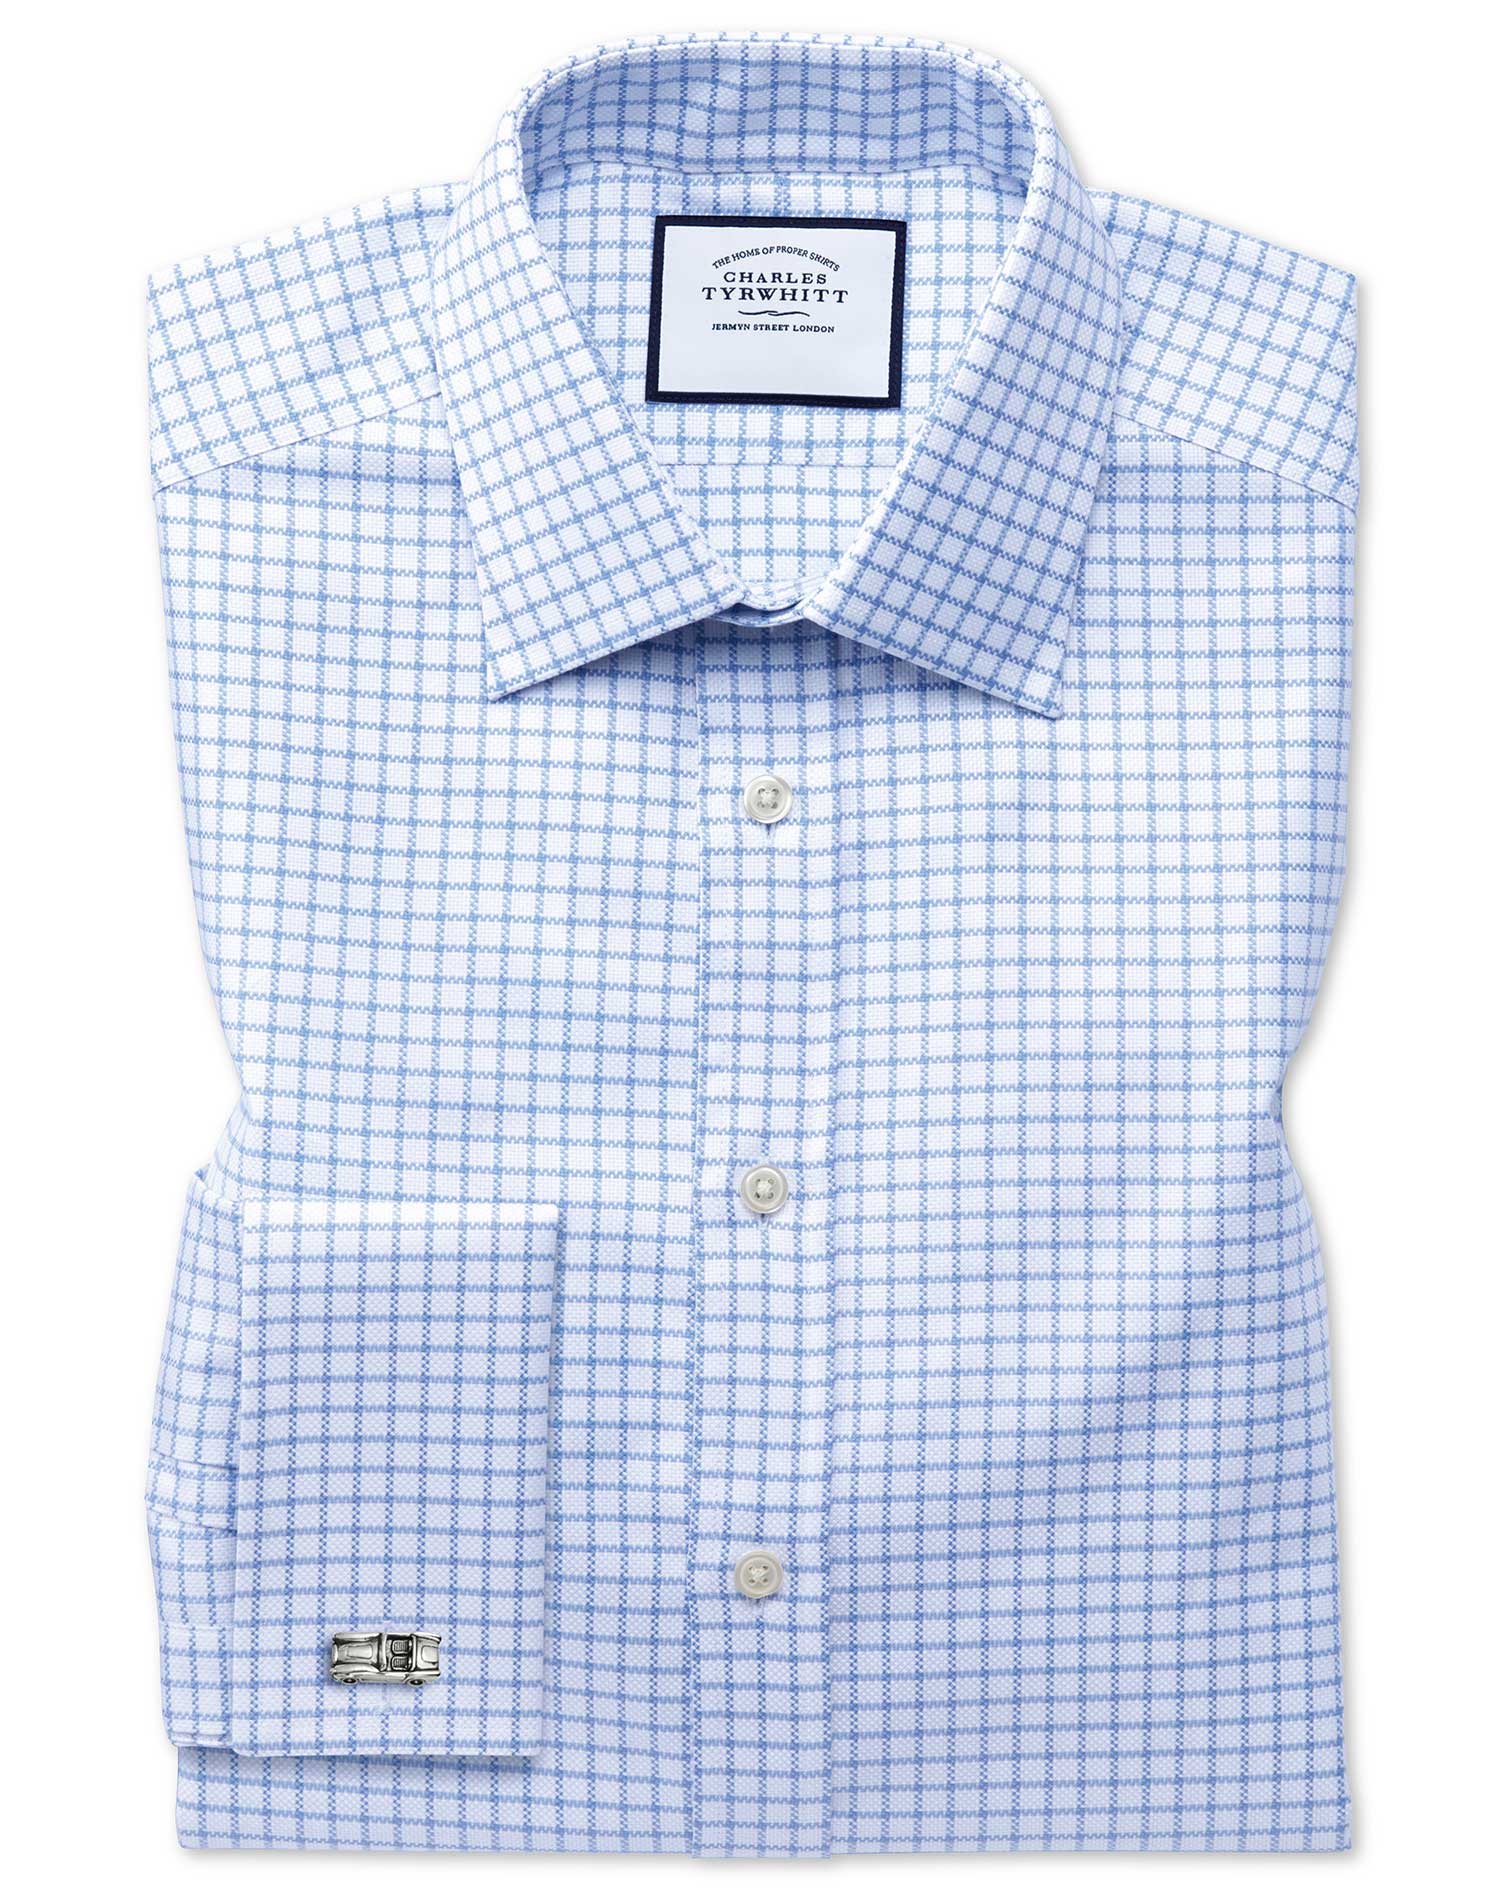 Classic Fit Egyptian Cotton Royal Oxford Sky Blue Check Formal Shirt Single Cuff Size 18/35 by Charl